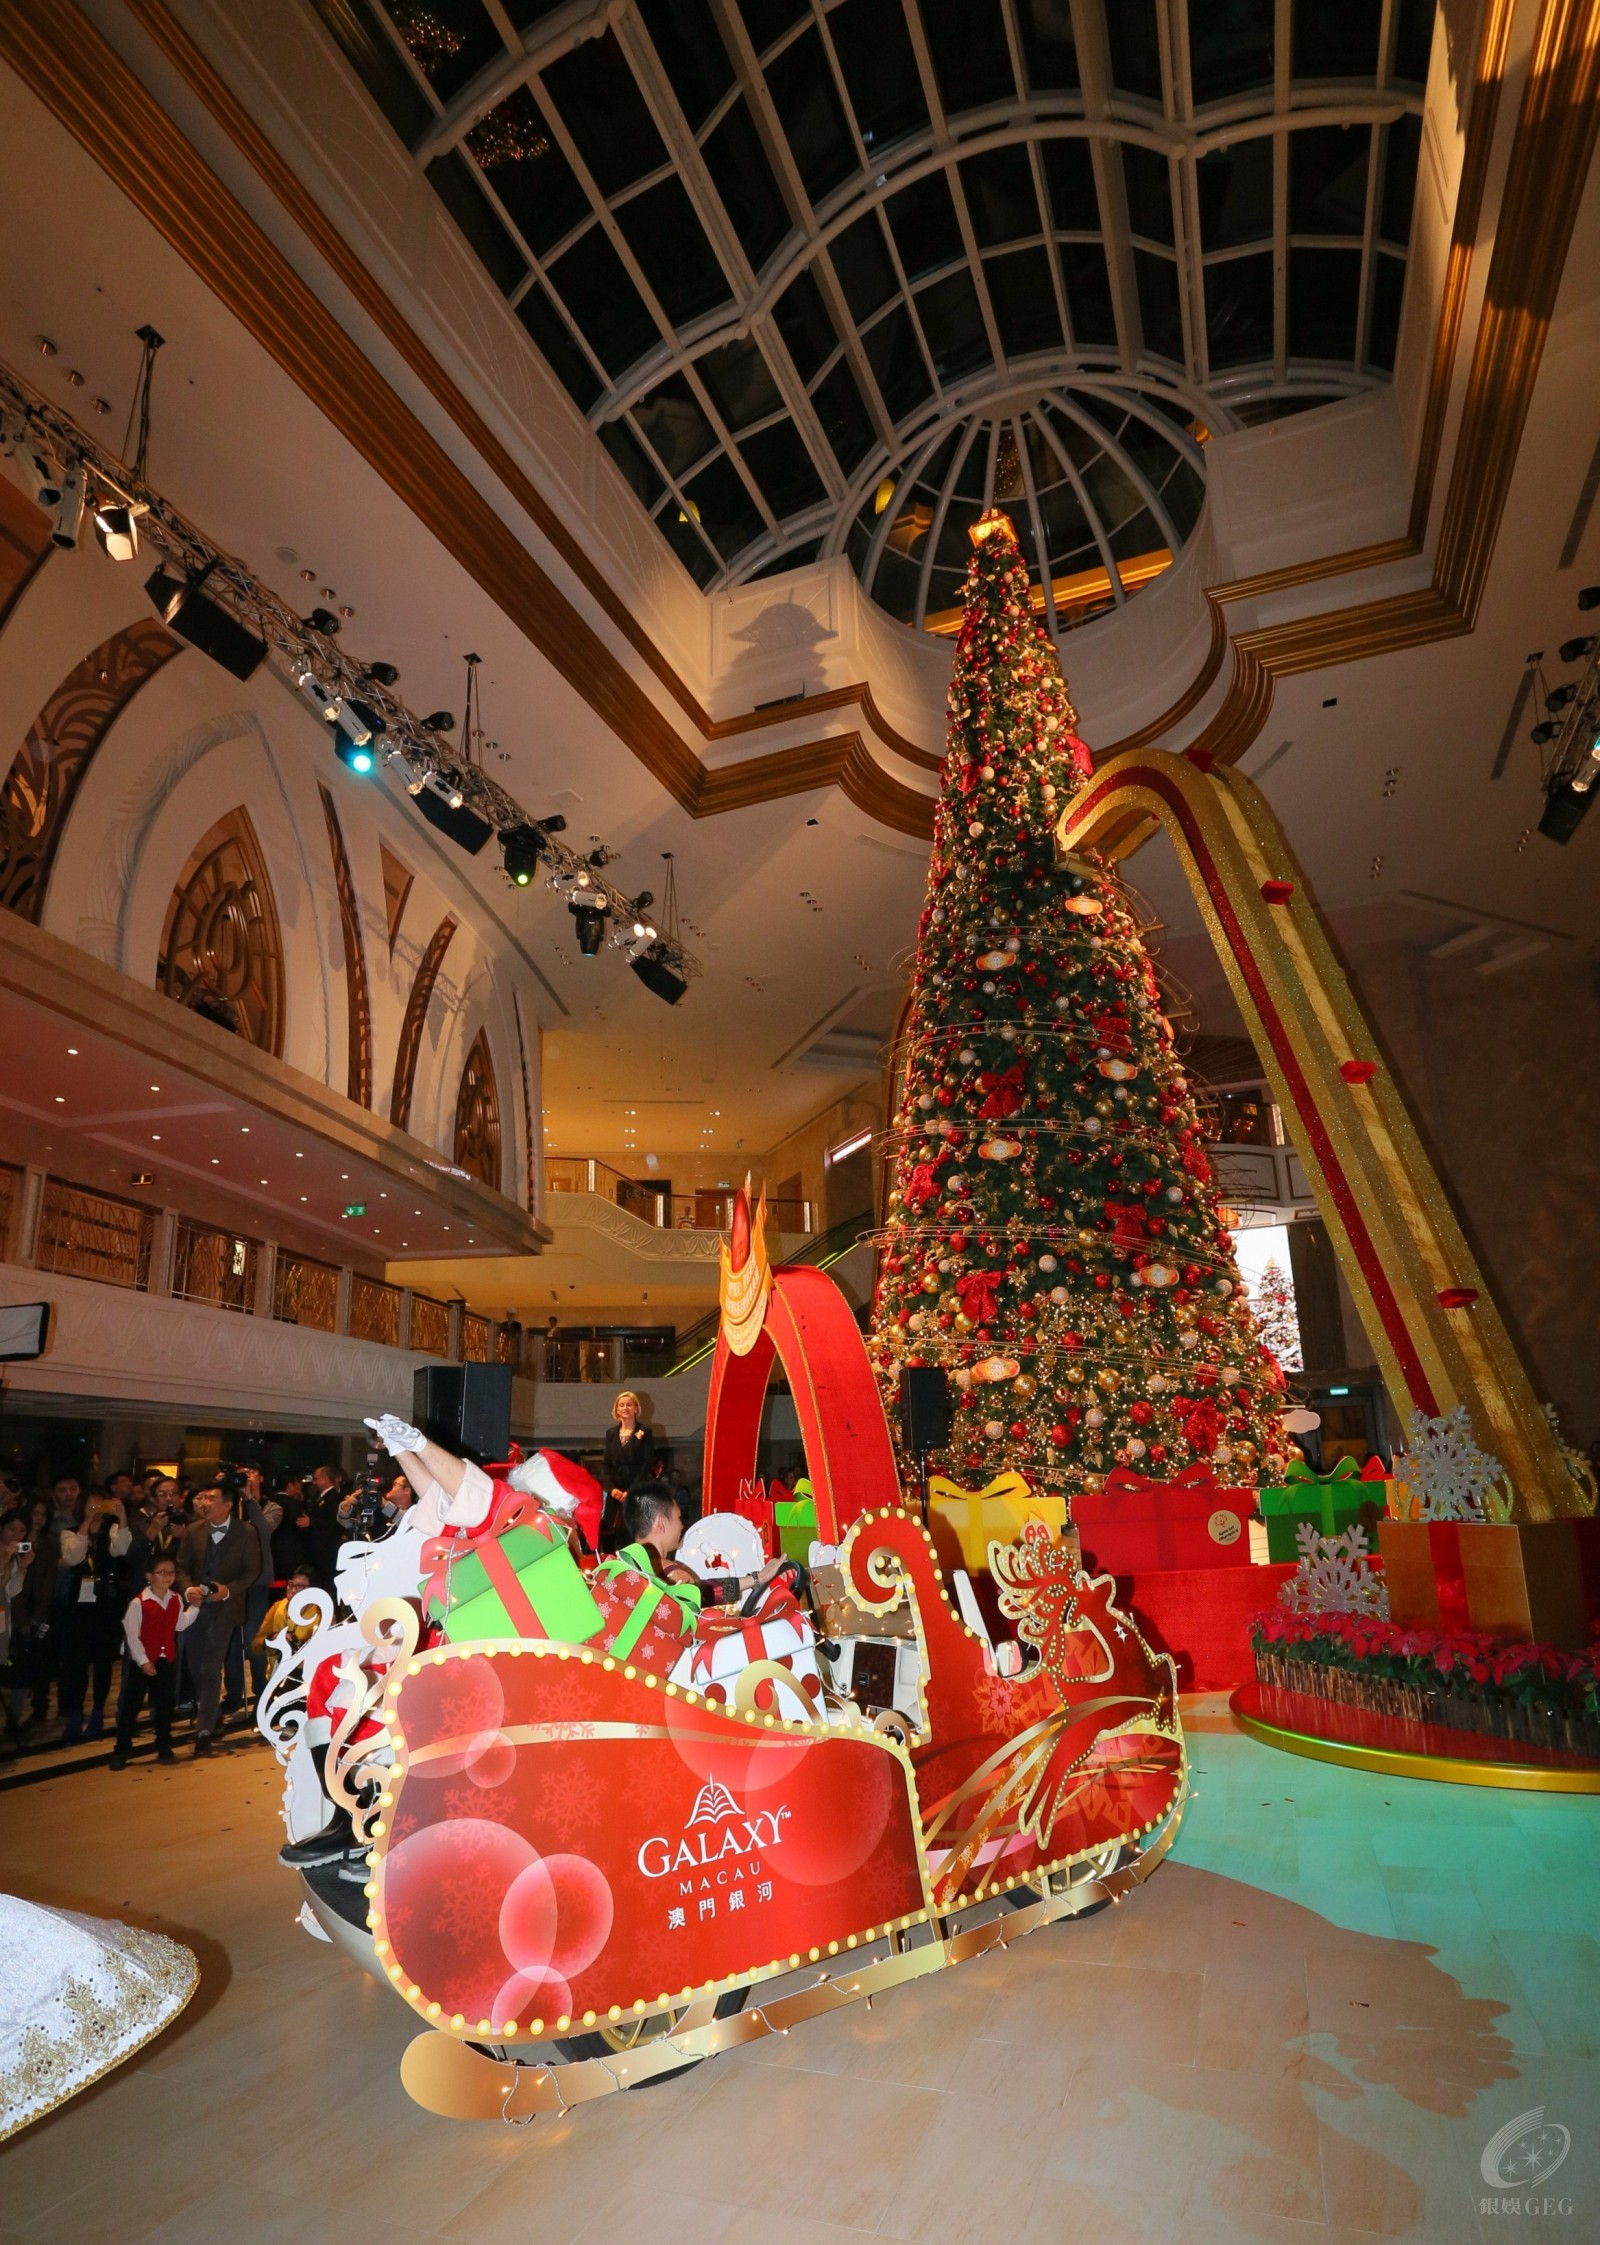 East Square is filled with a general air of joy and jubilation with the  colorful Christmas decorations.